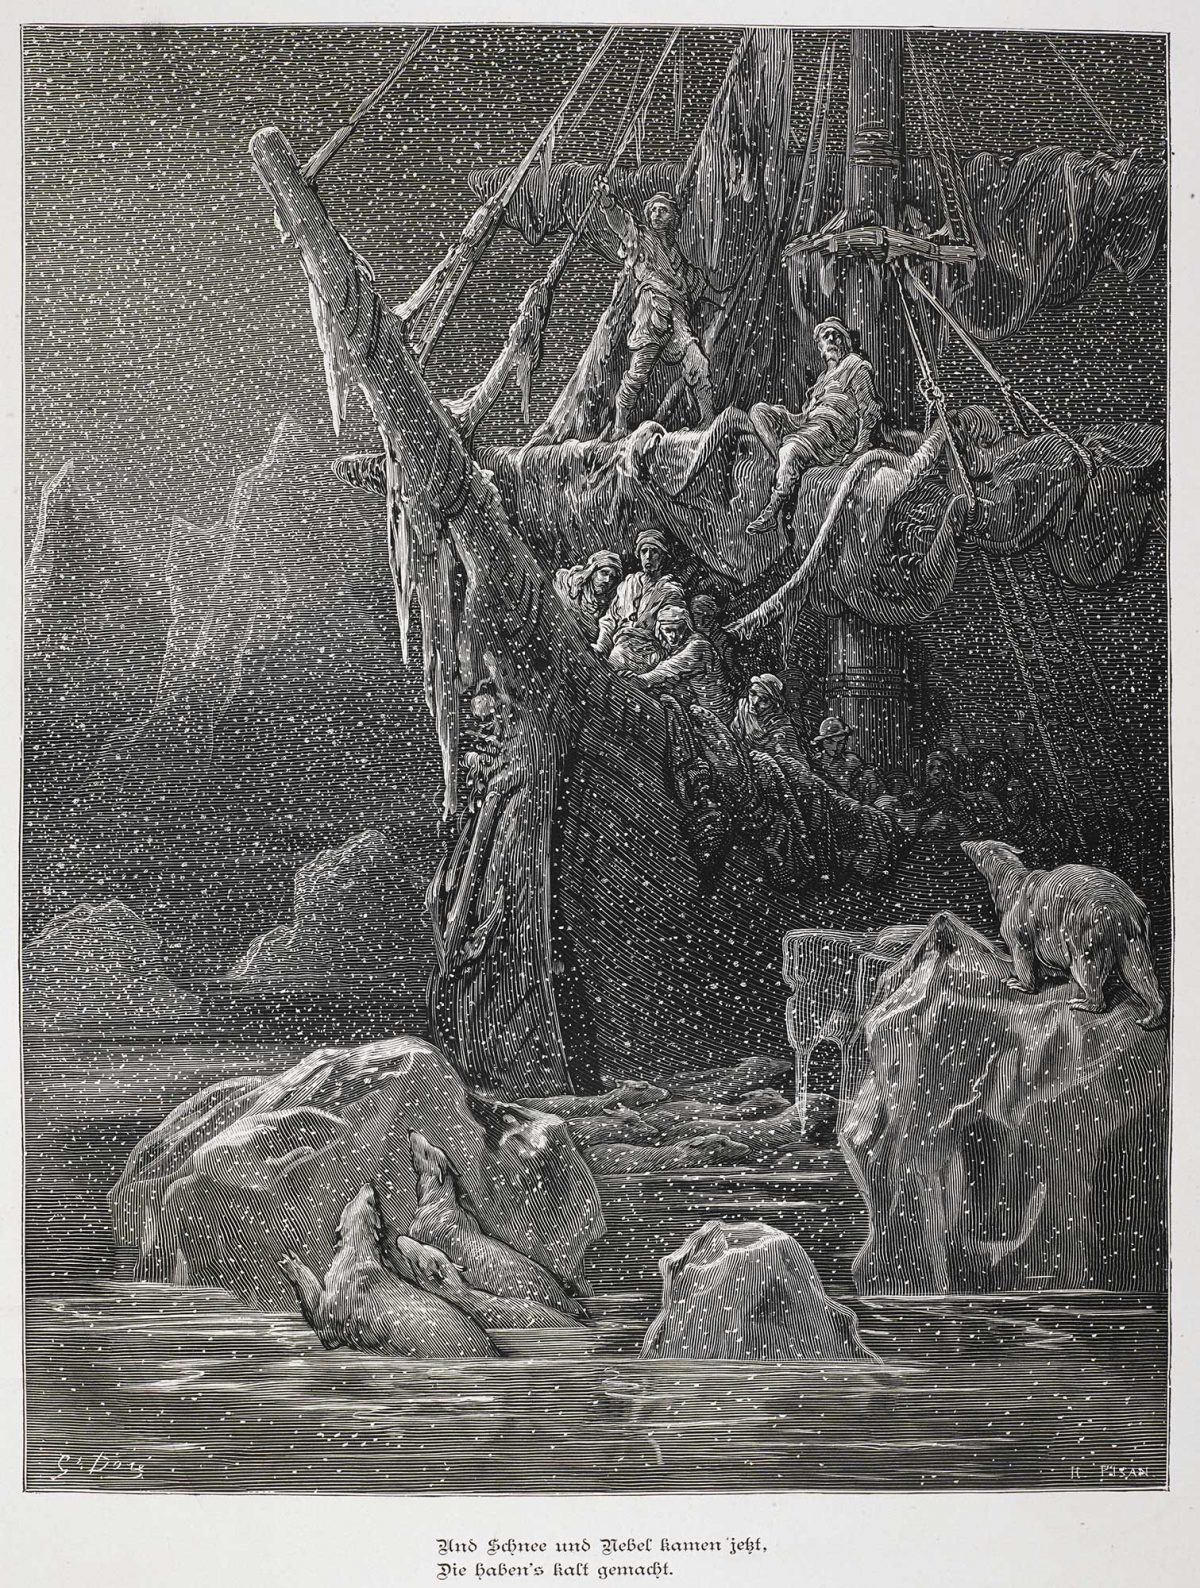 coleridge-samuel_taylor-ancient-gustave-dore